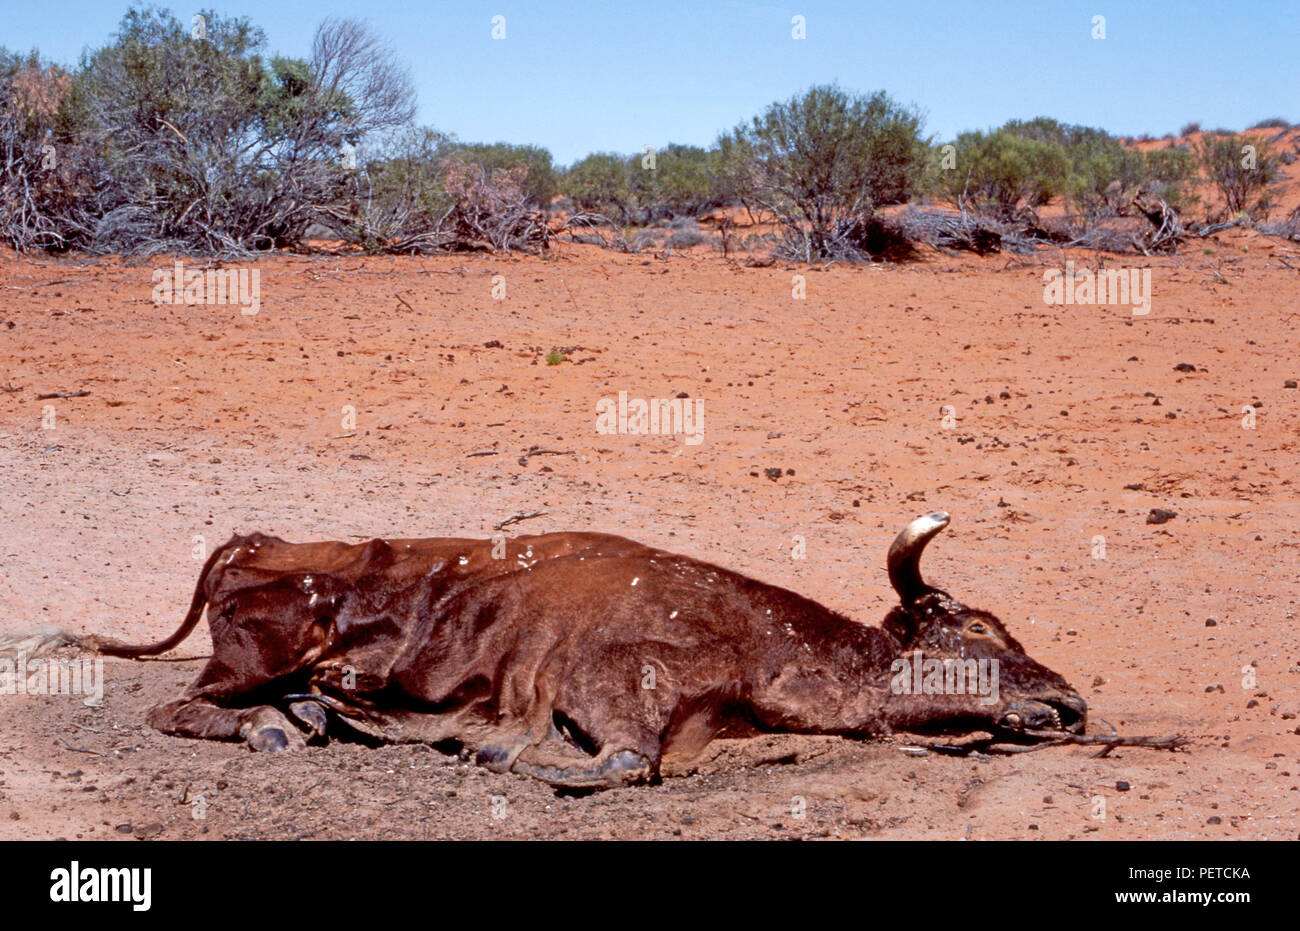 Remains of a dead cow whick has perished owing to the extreme drought conditions in the Northern Territory, Australia. Stock Photo